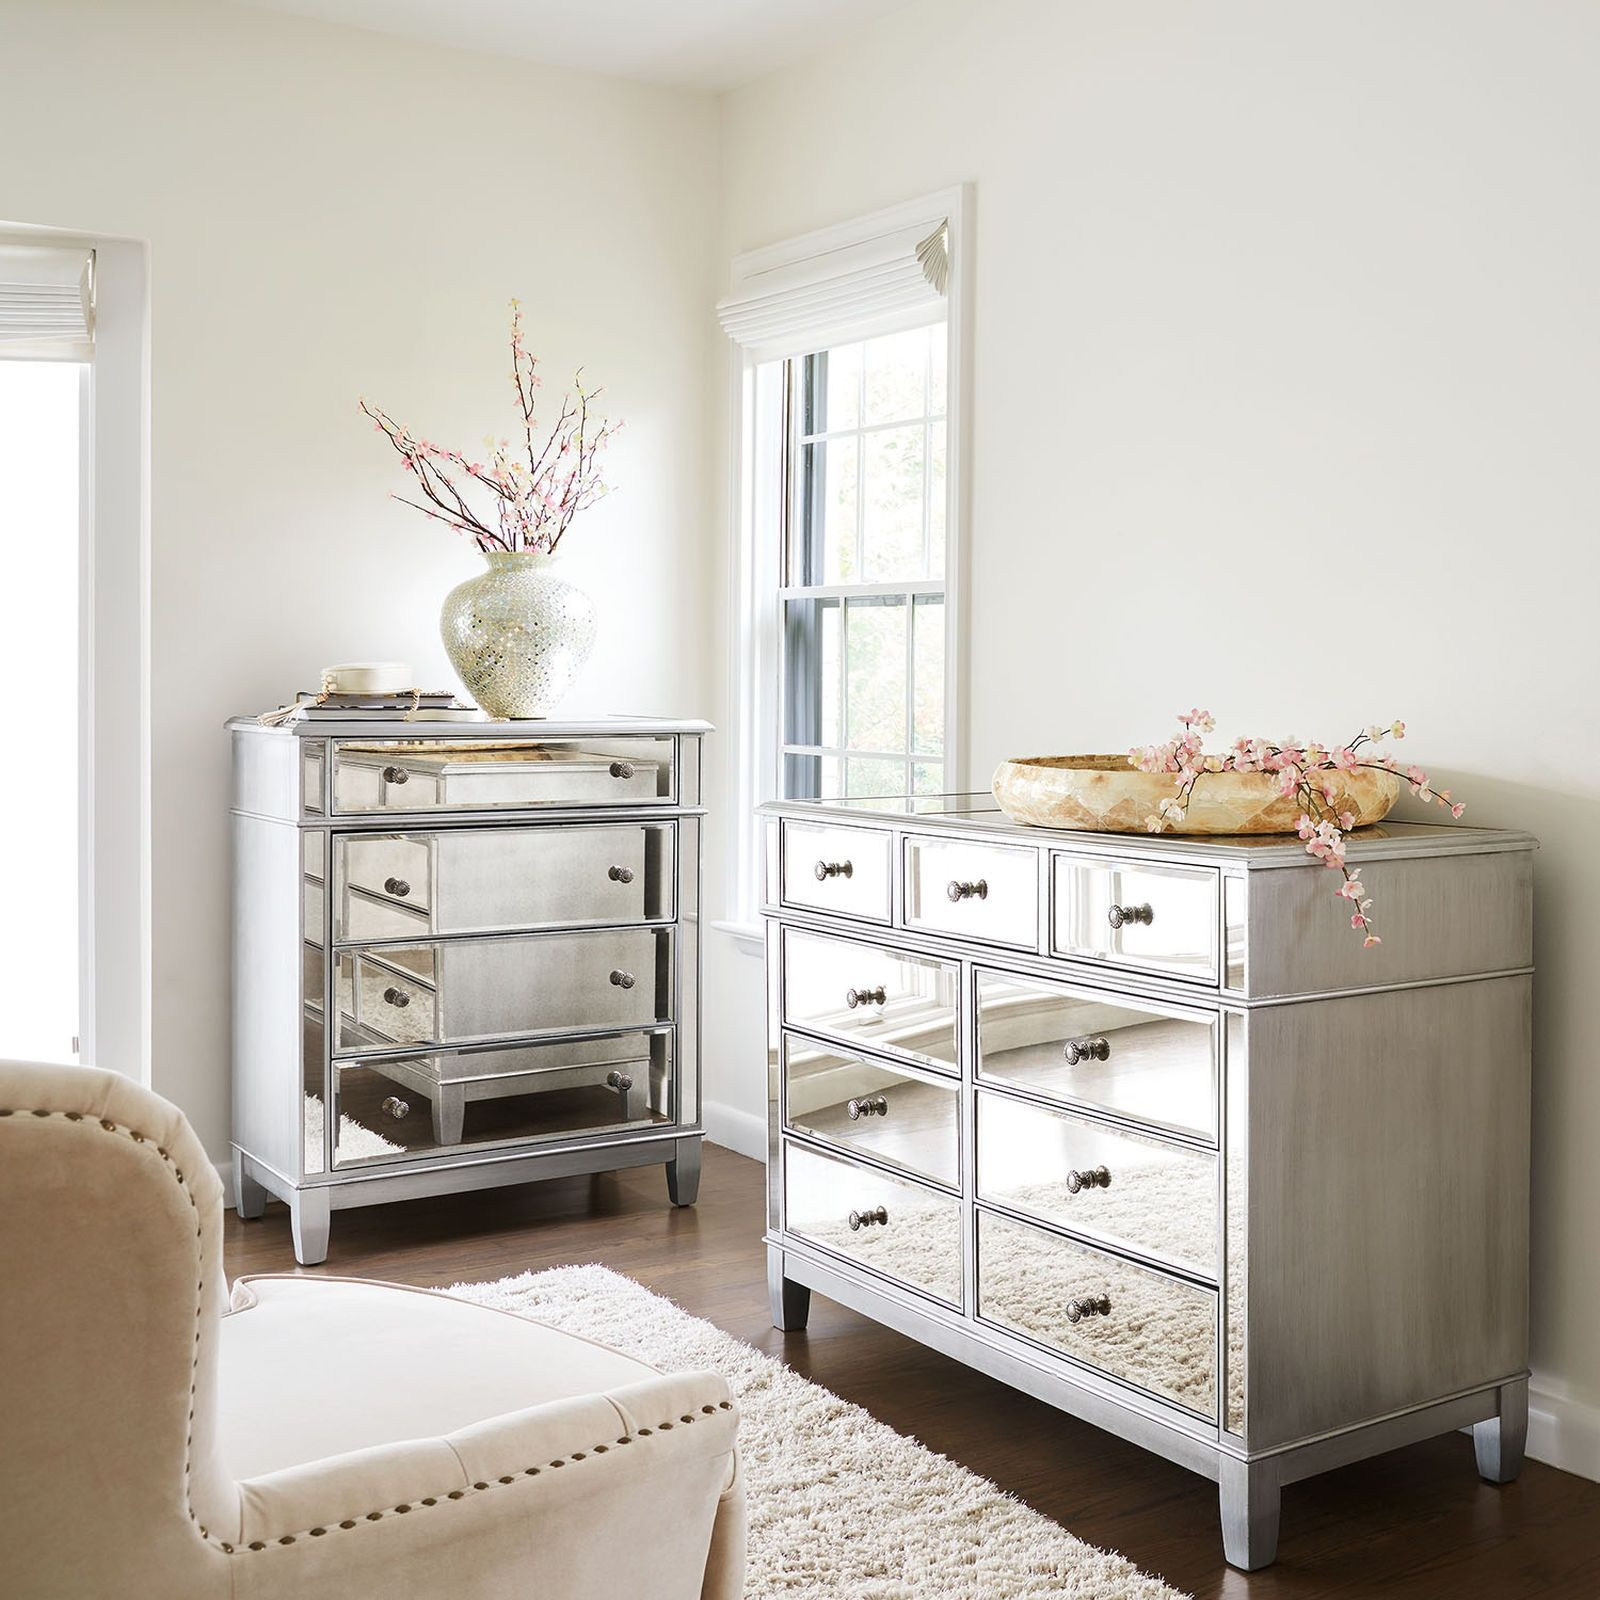 Mirrored Bedroom Furniture Decorating Ideas Great Mirrored Dresser